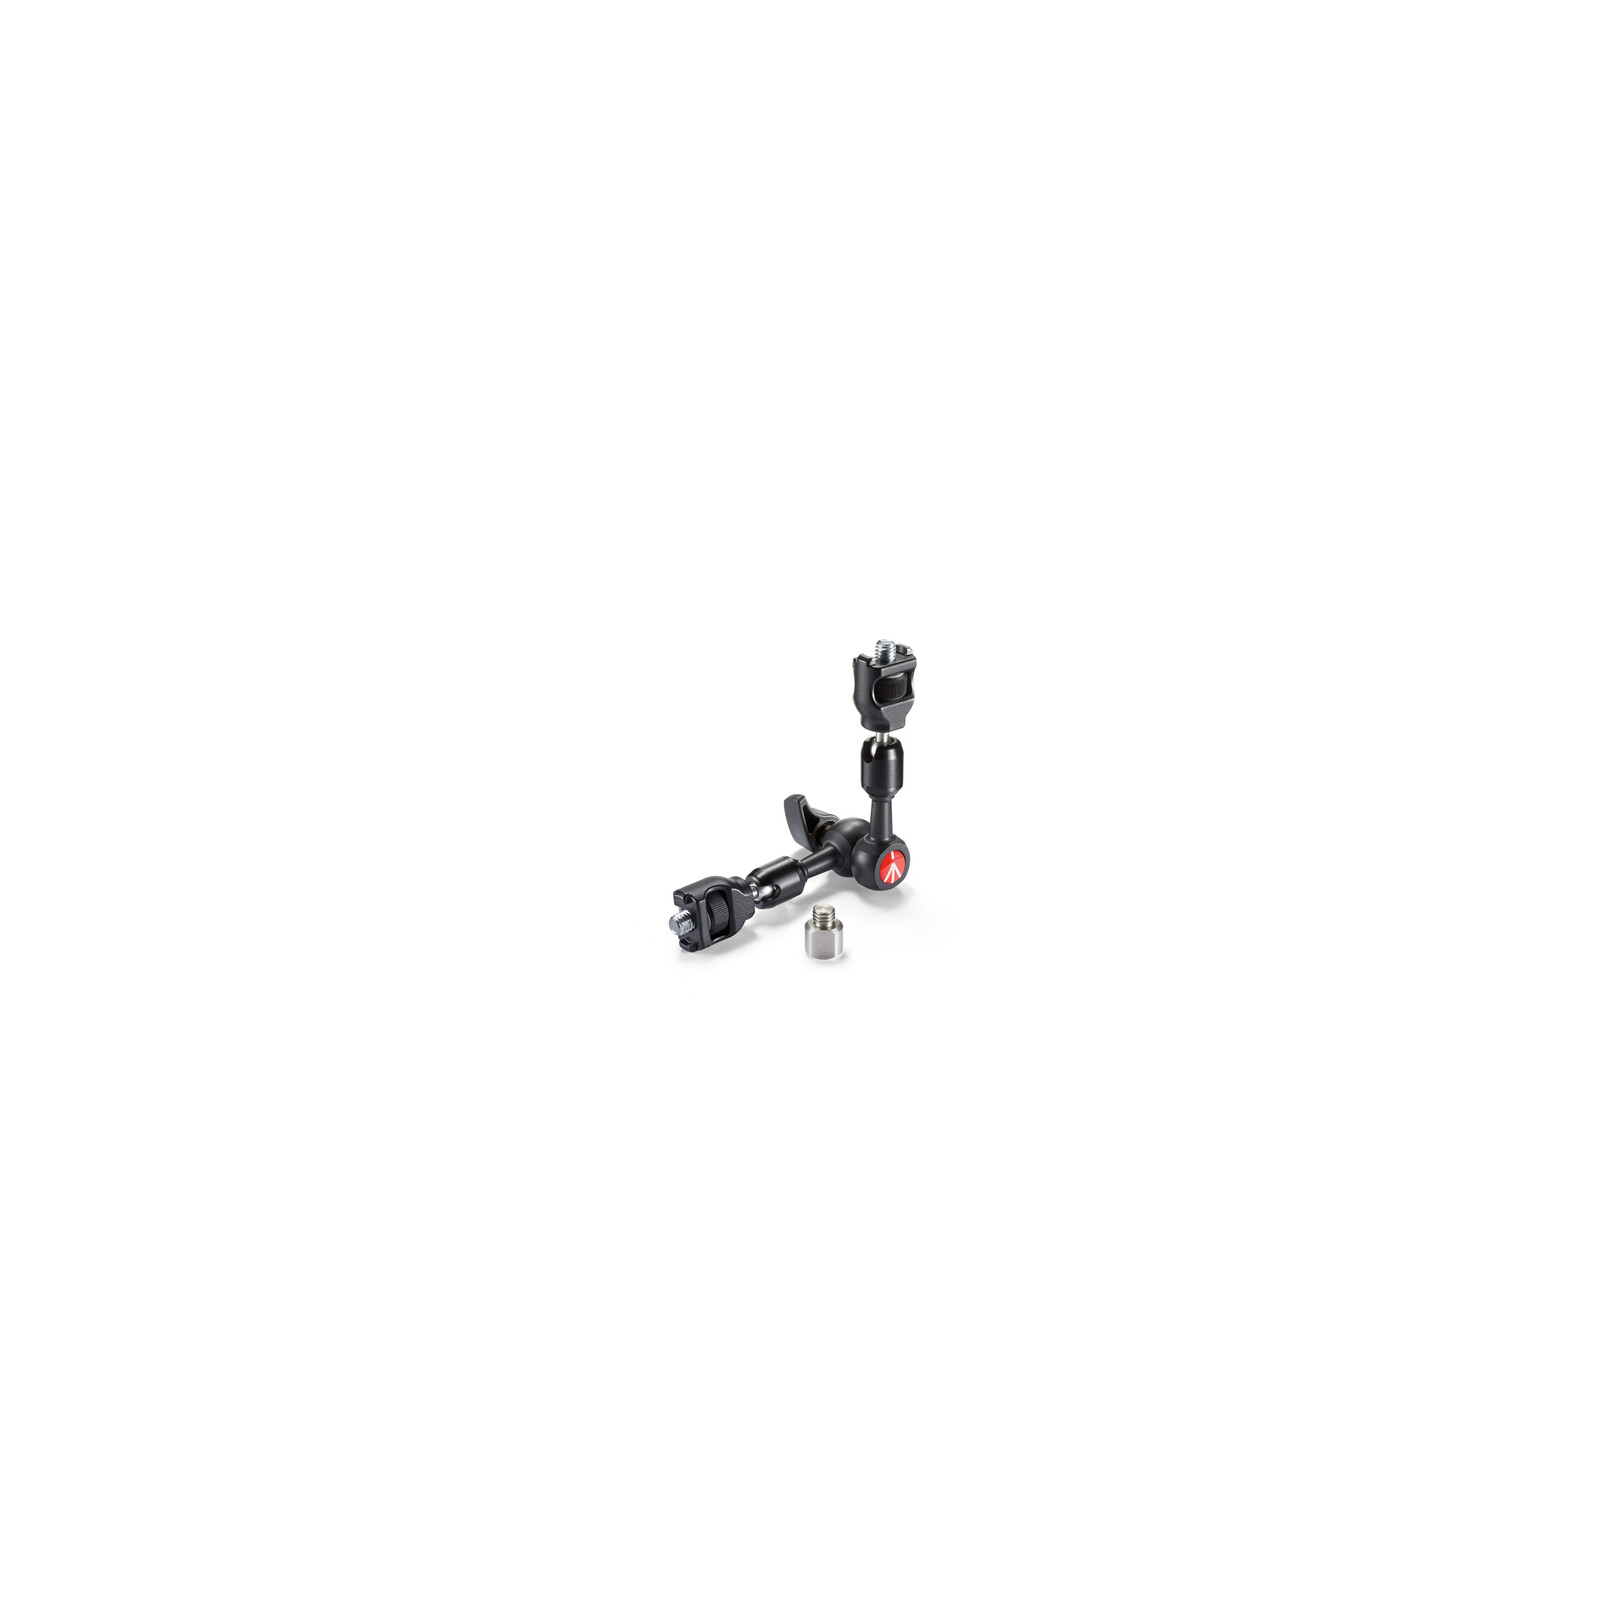 Manfrotto 244MICRO-AR Friktions Foto Arm